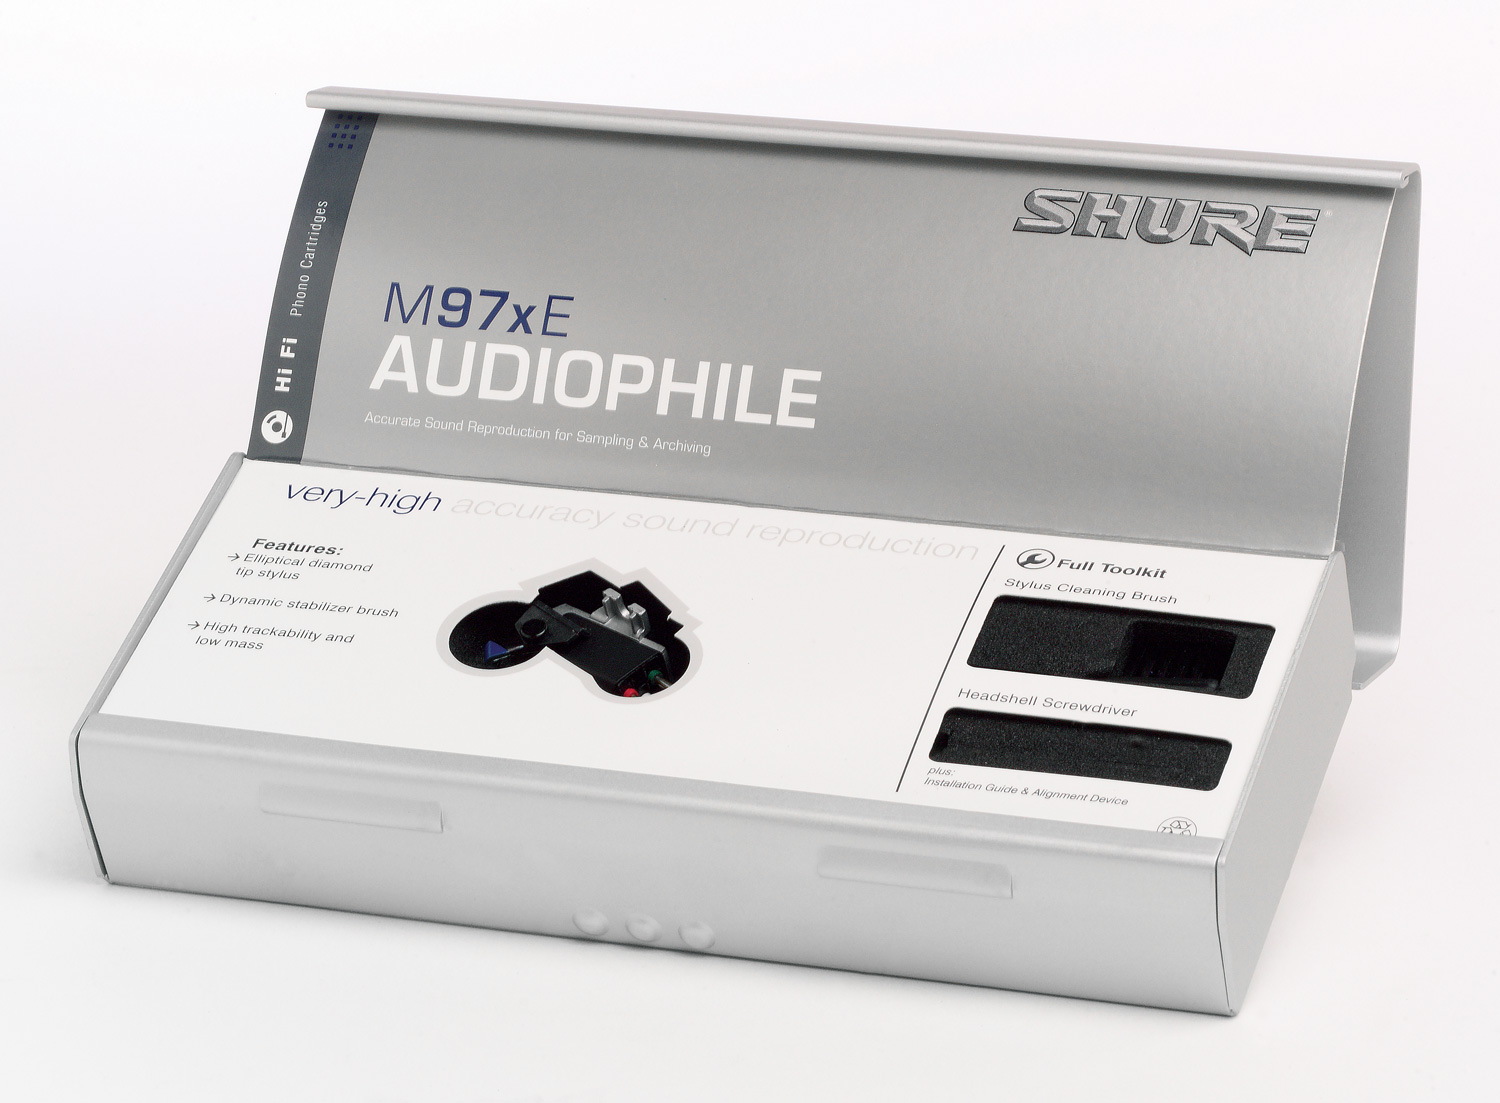 Photo of the inside of the Shure M97xE's box.